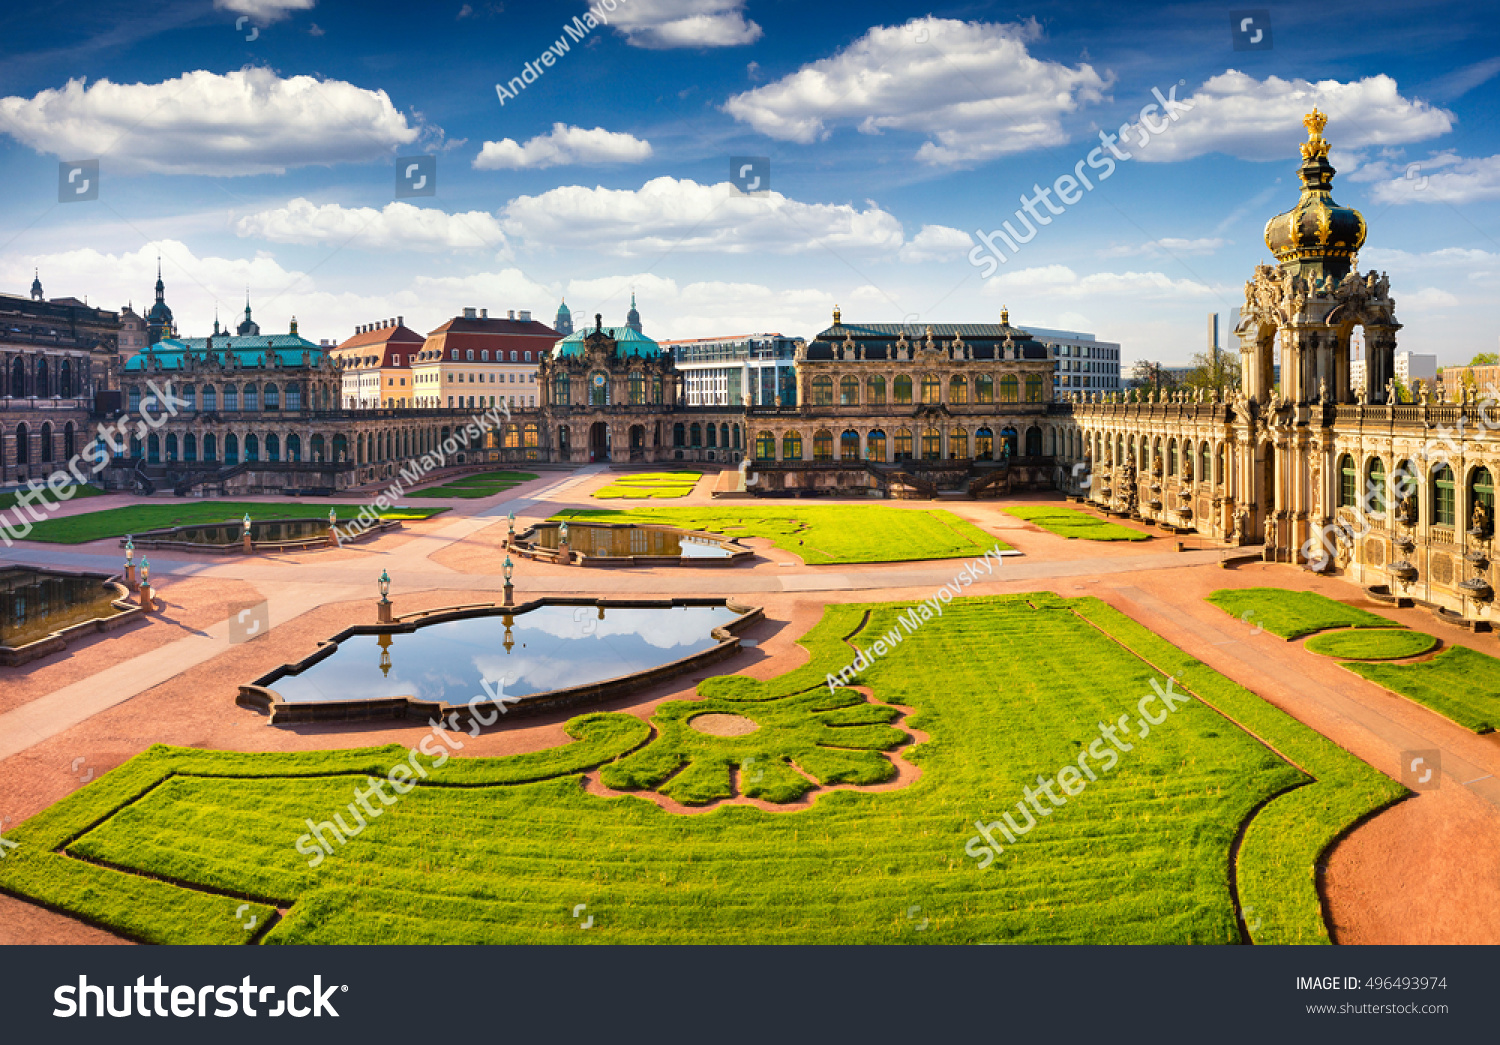 View from bird's eye of famous Zwinger palace Der Dresdner Zwinger Art Gallery of Dresden Colorful spring scene in Dresden Saxony Germany Europe Artistic style post processed photo